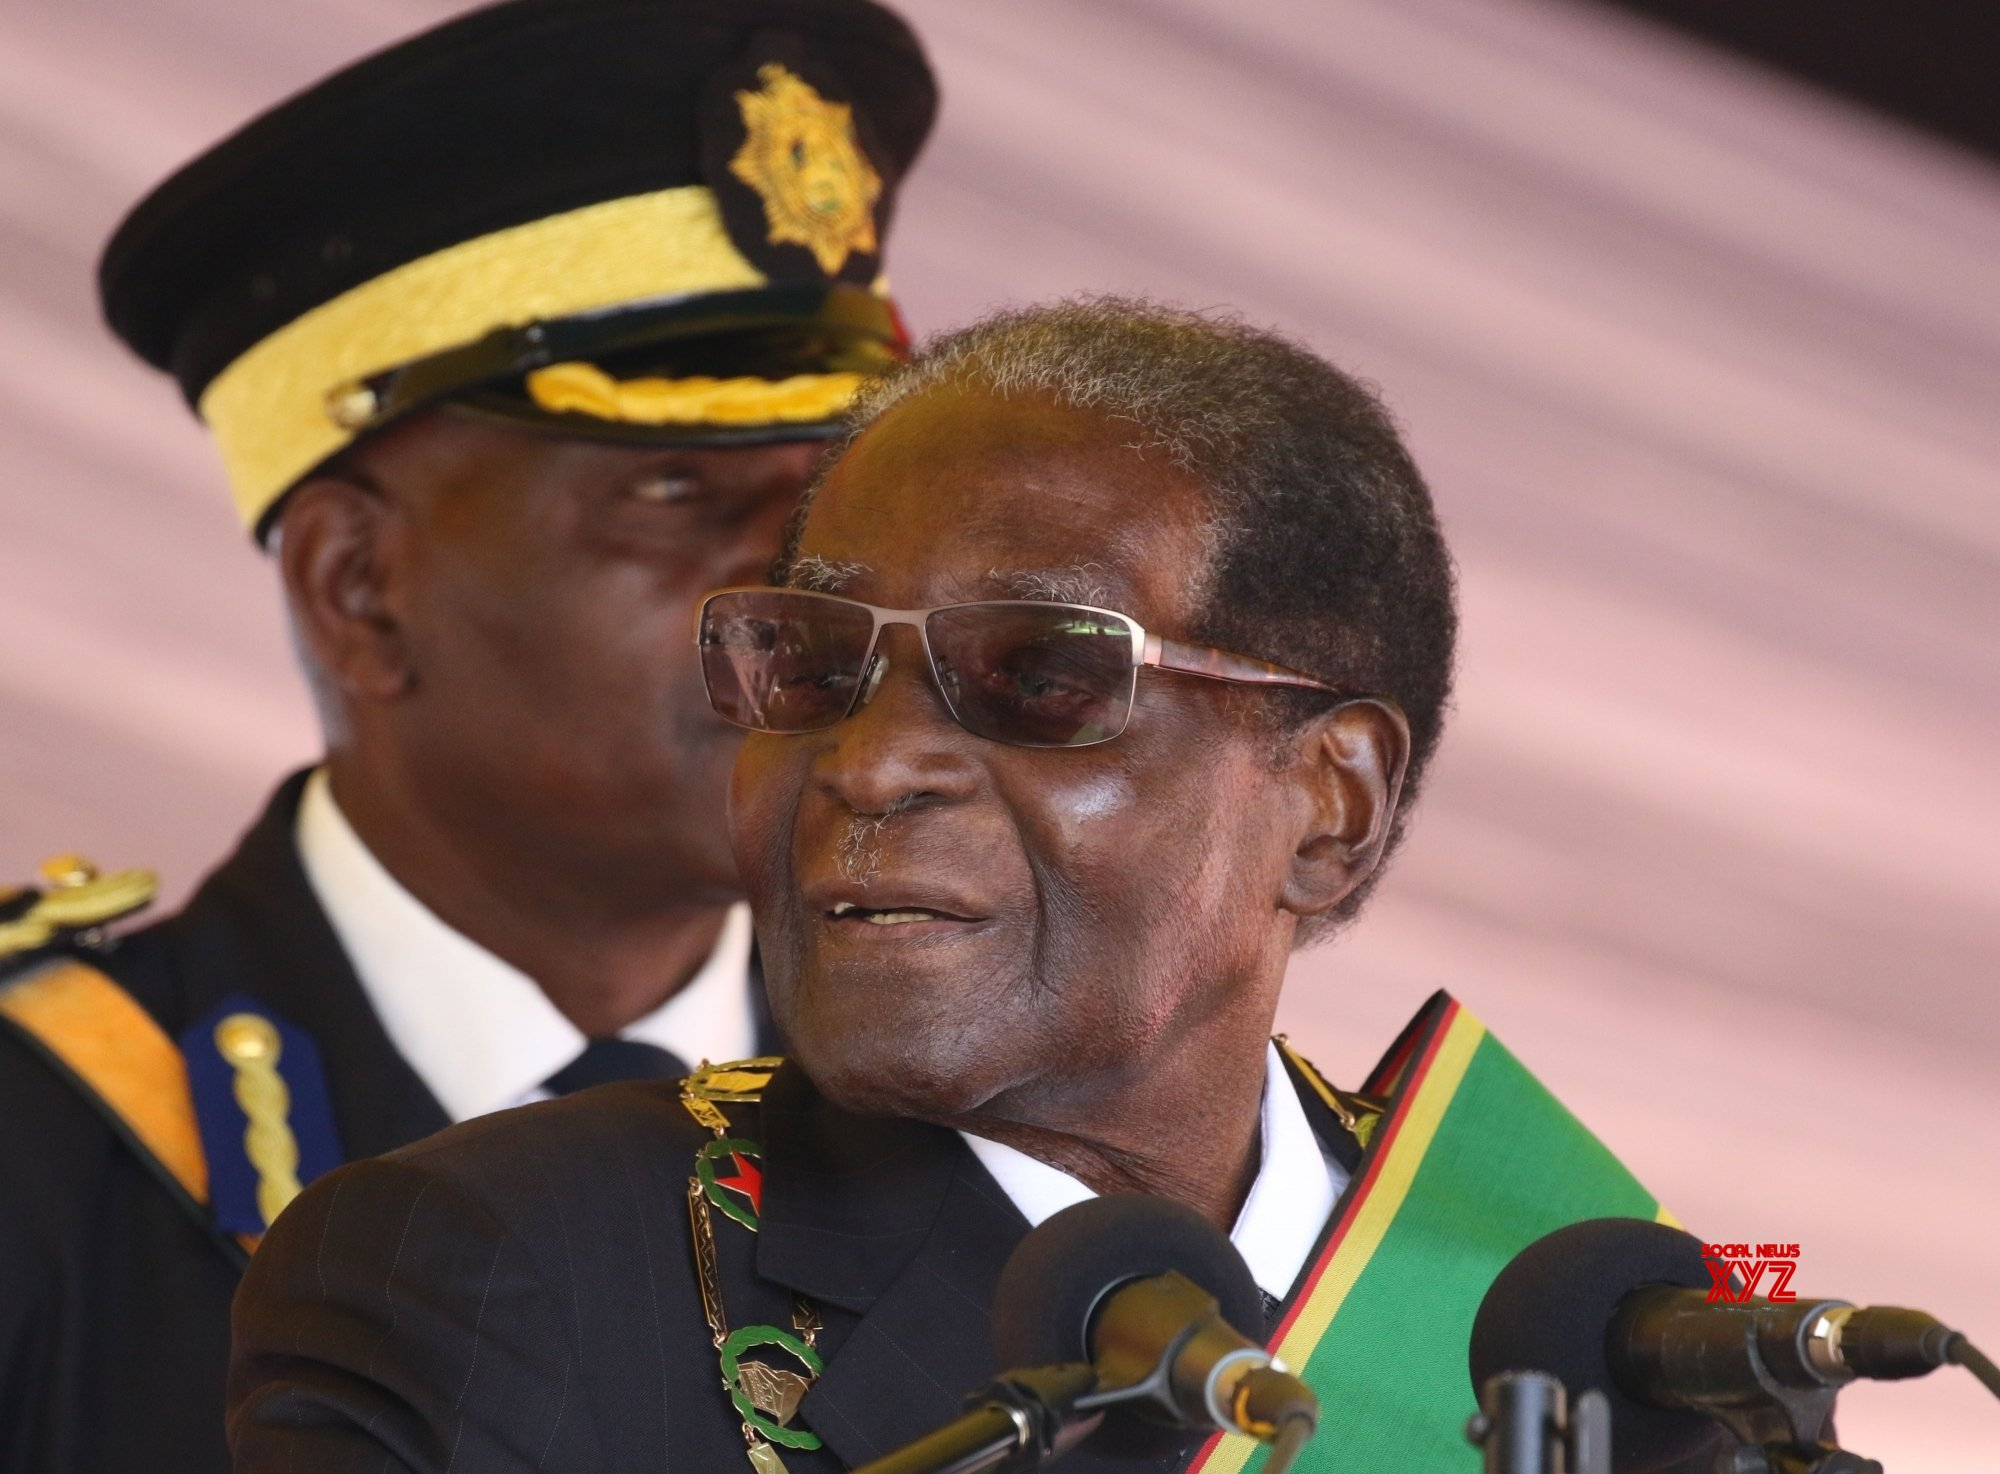 Zimbabwe govt dismisses talk of dispute with family over Robert Mugabe's burial